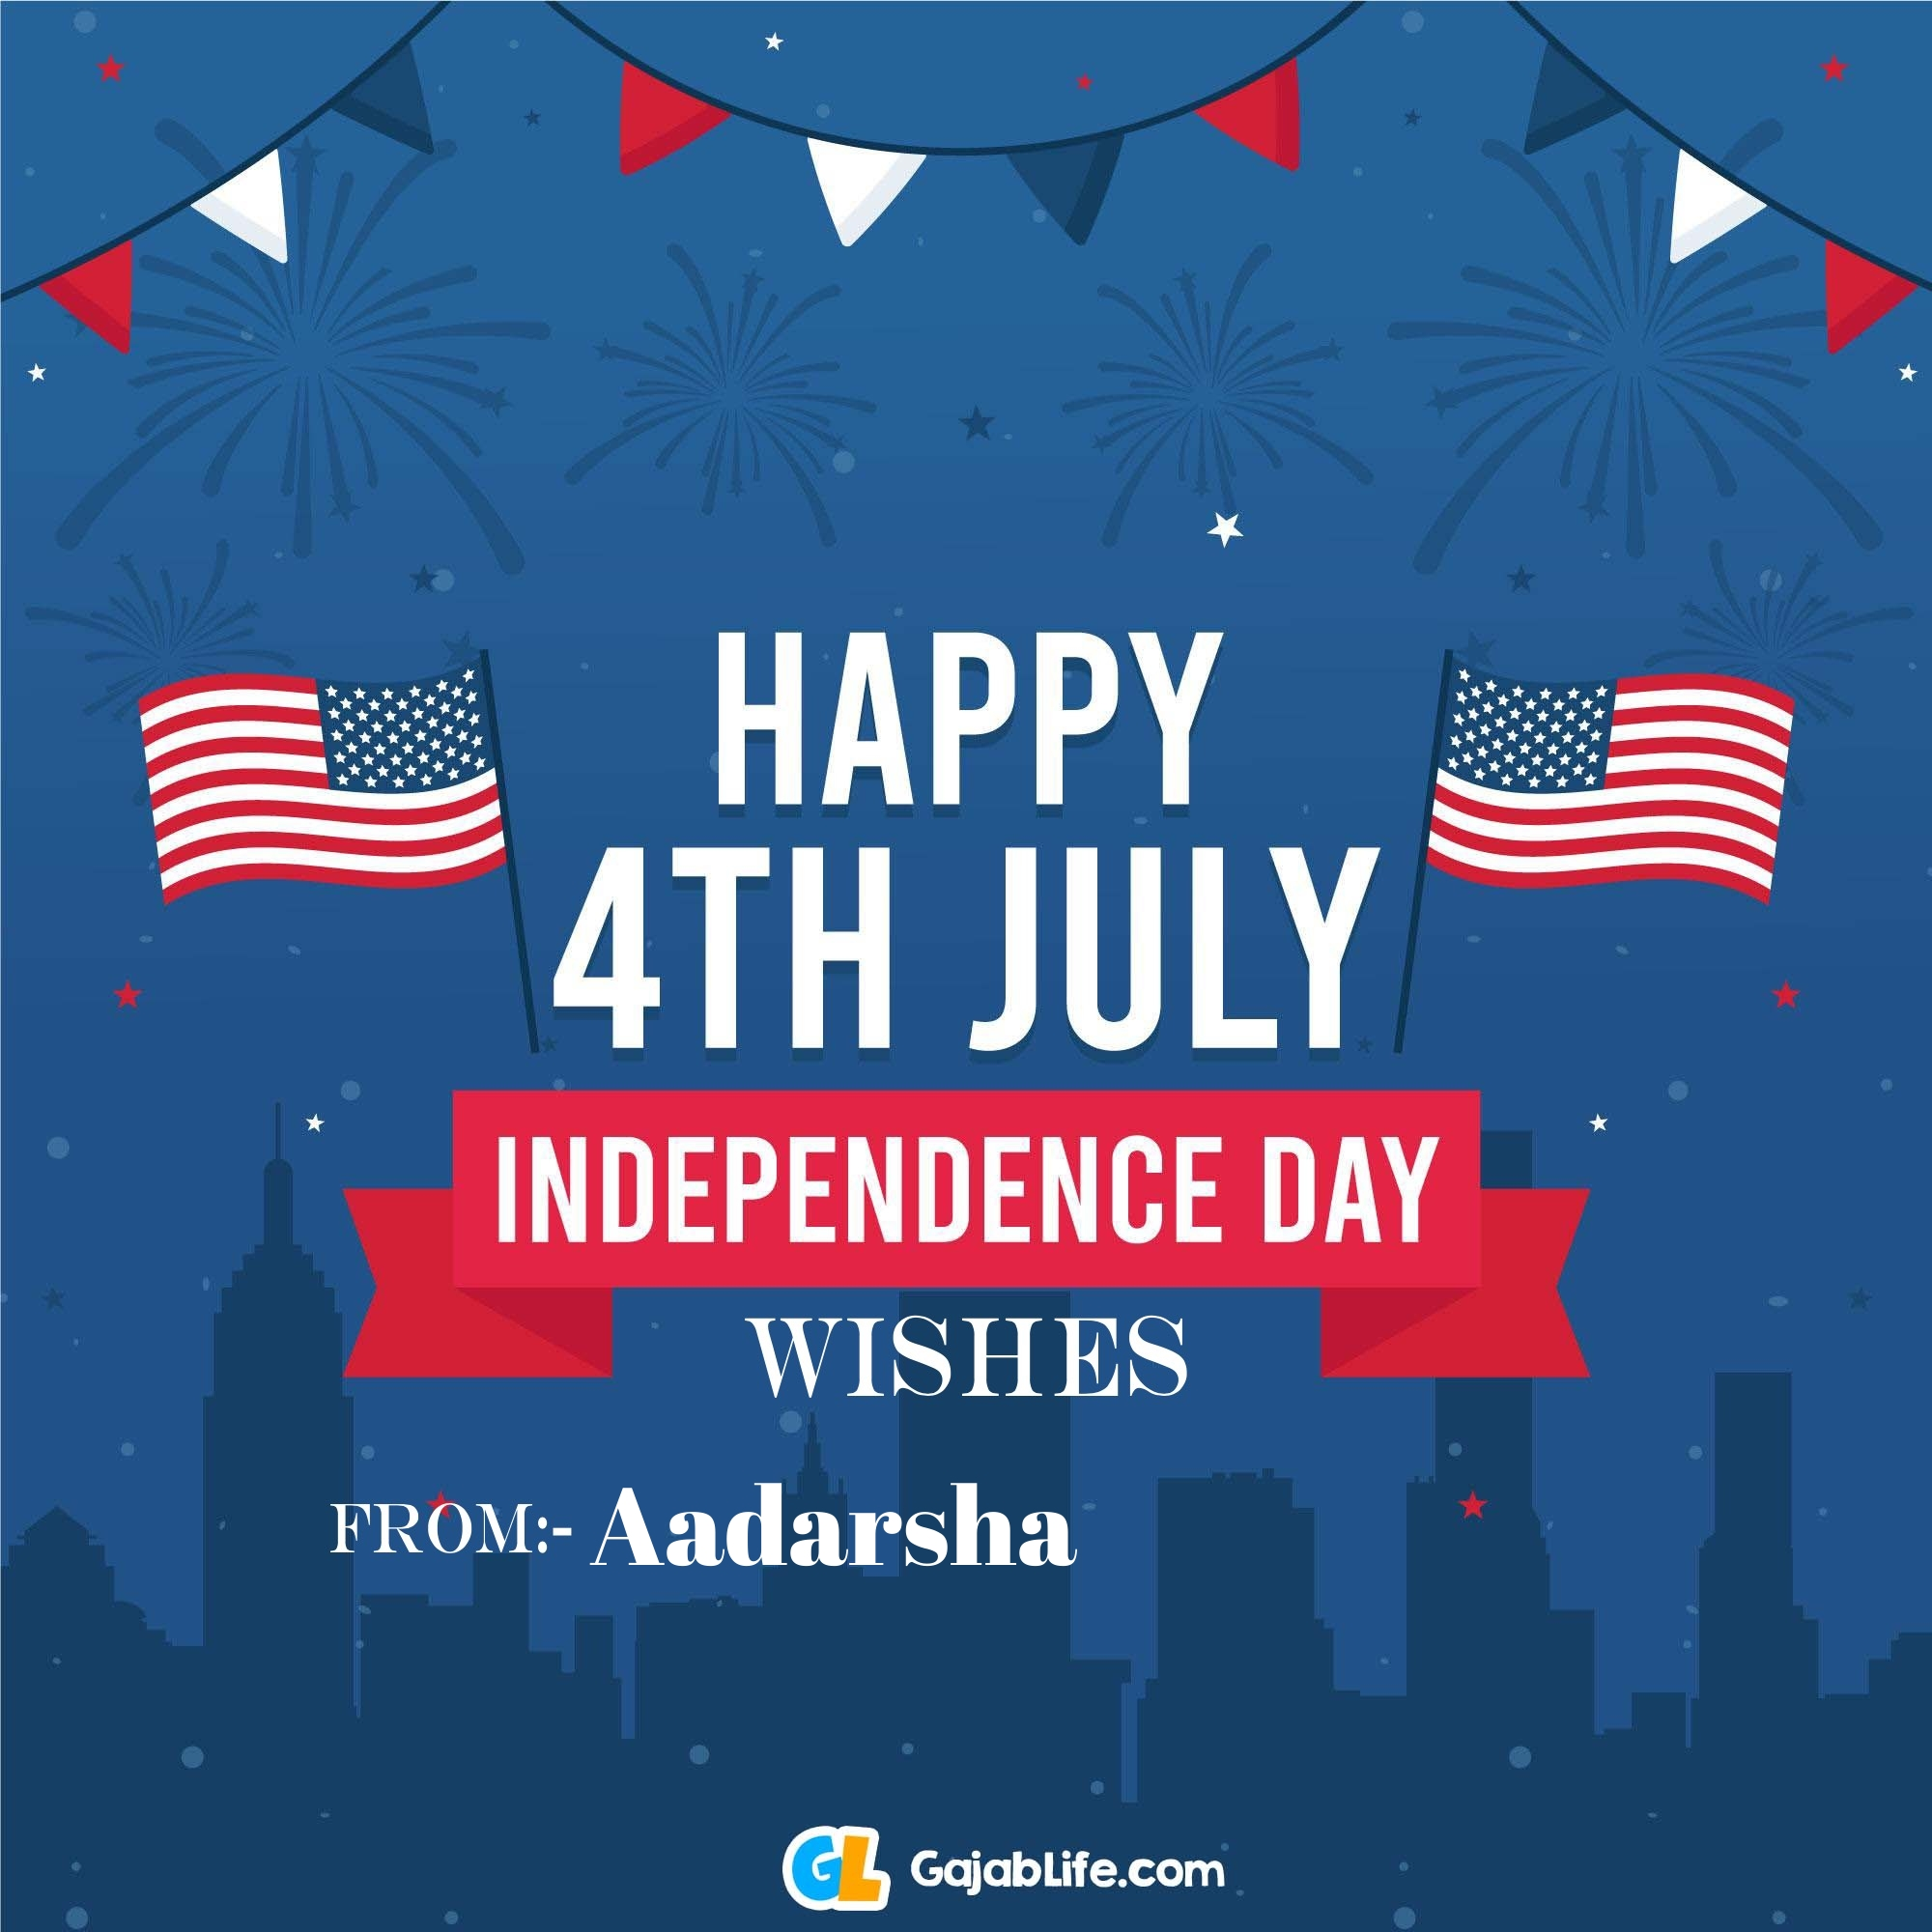 Aadarsha happy independence day united states of america images